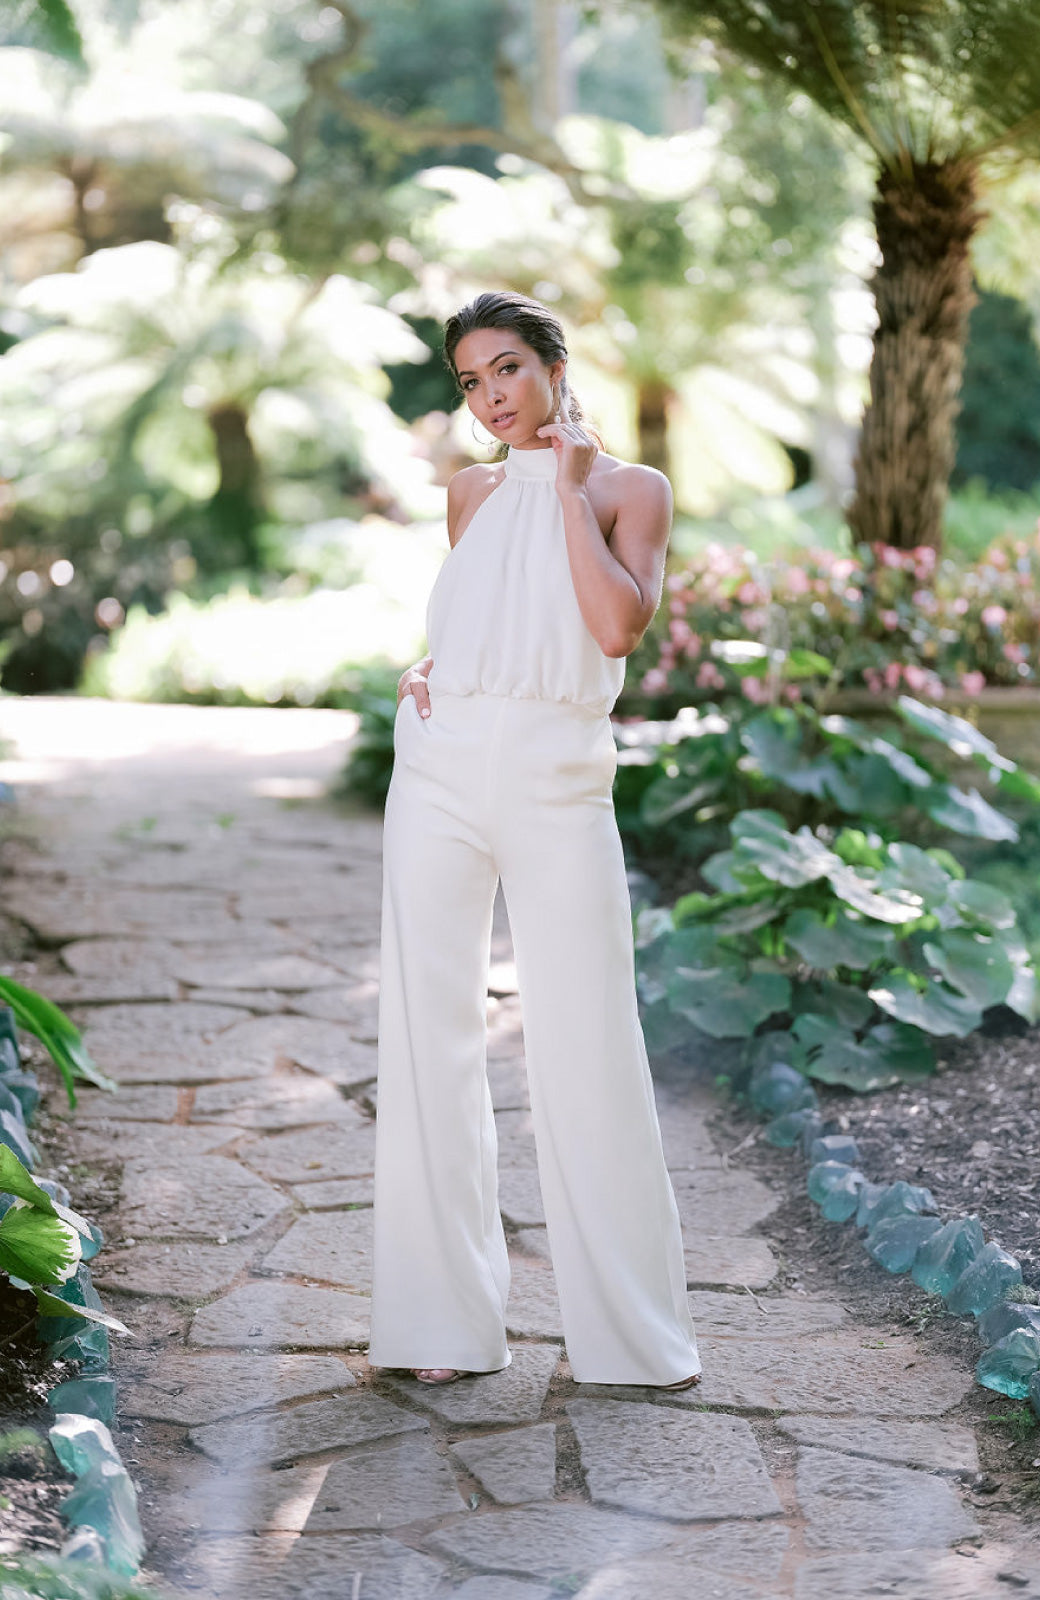 Danielle Wedding Jumpsuit - Daphne Newman Design